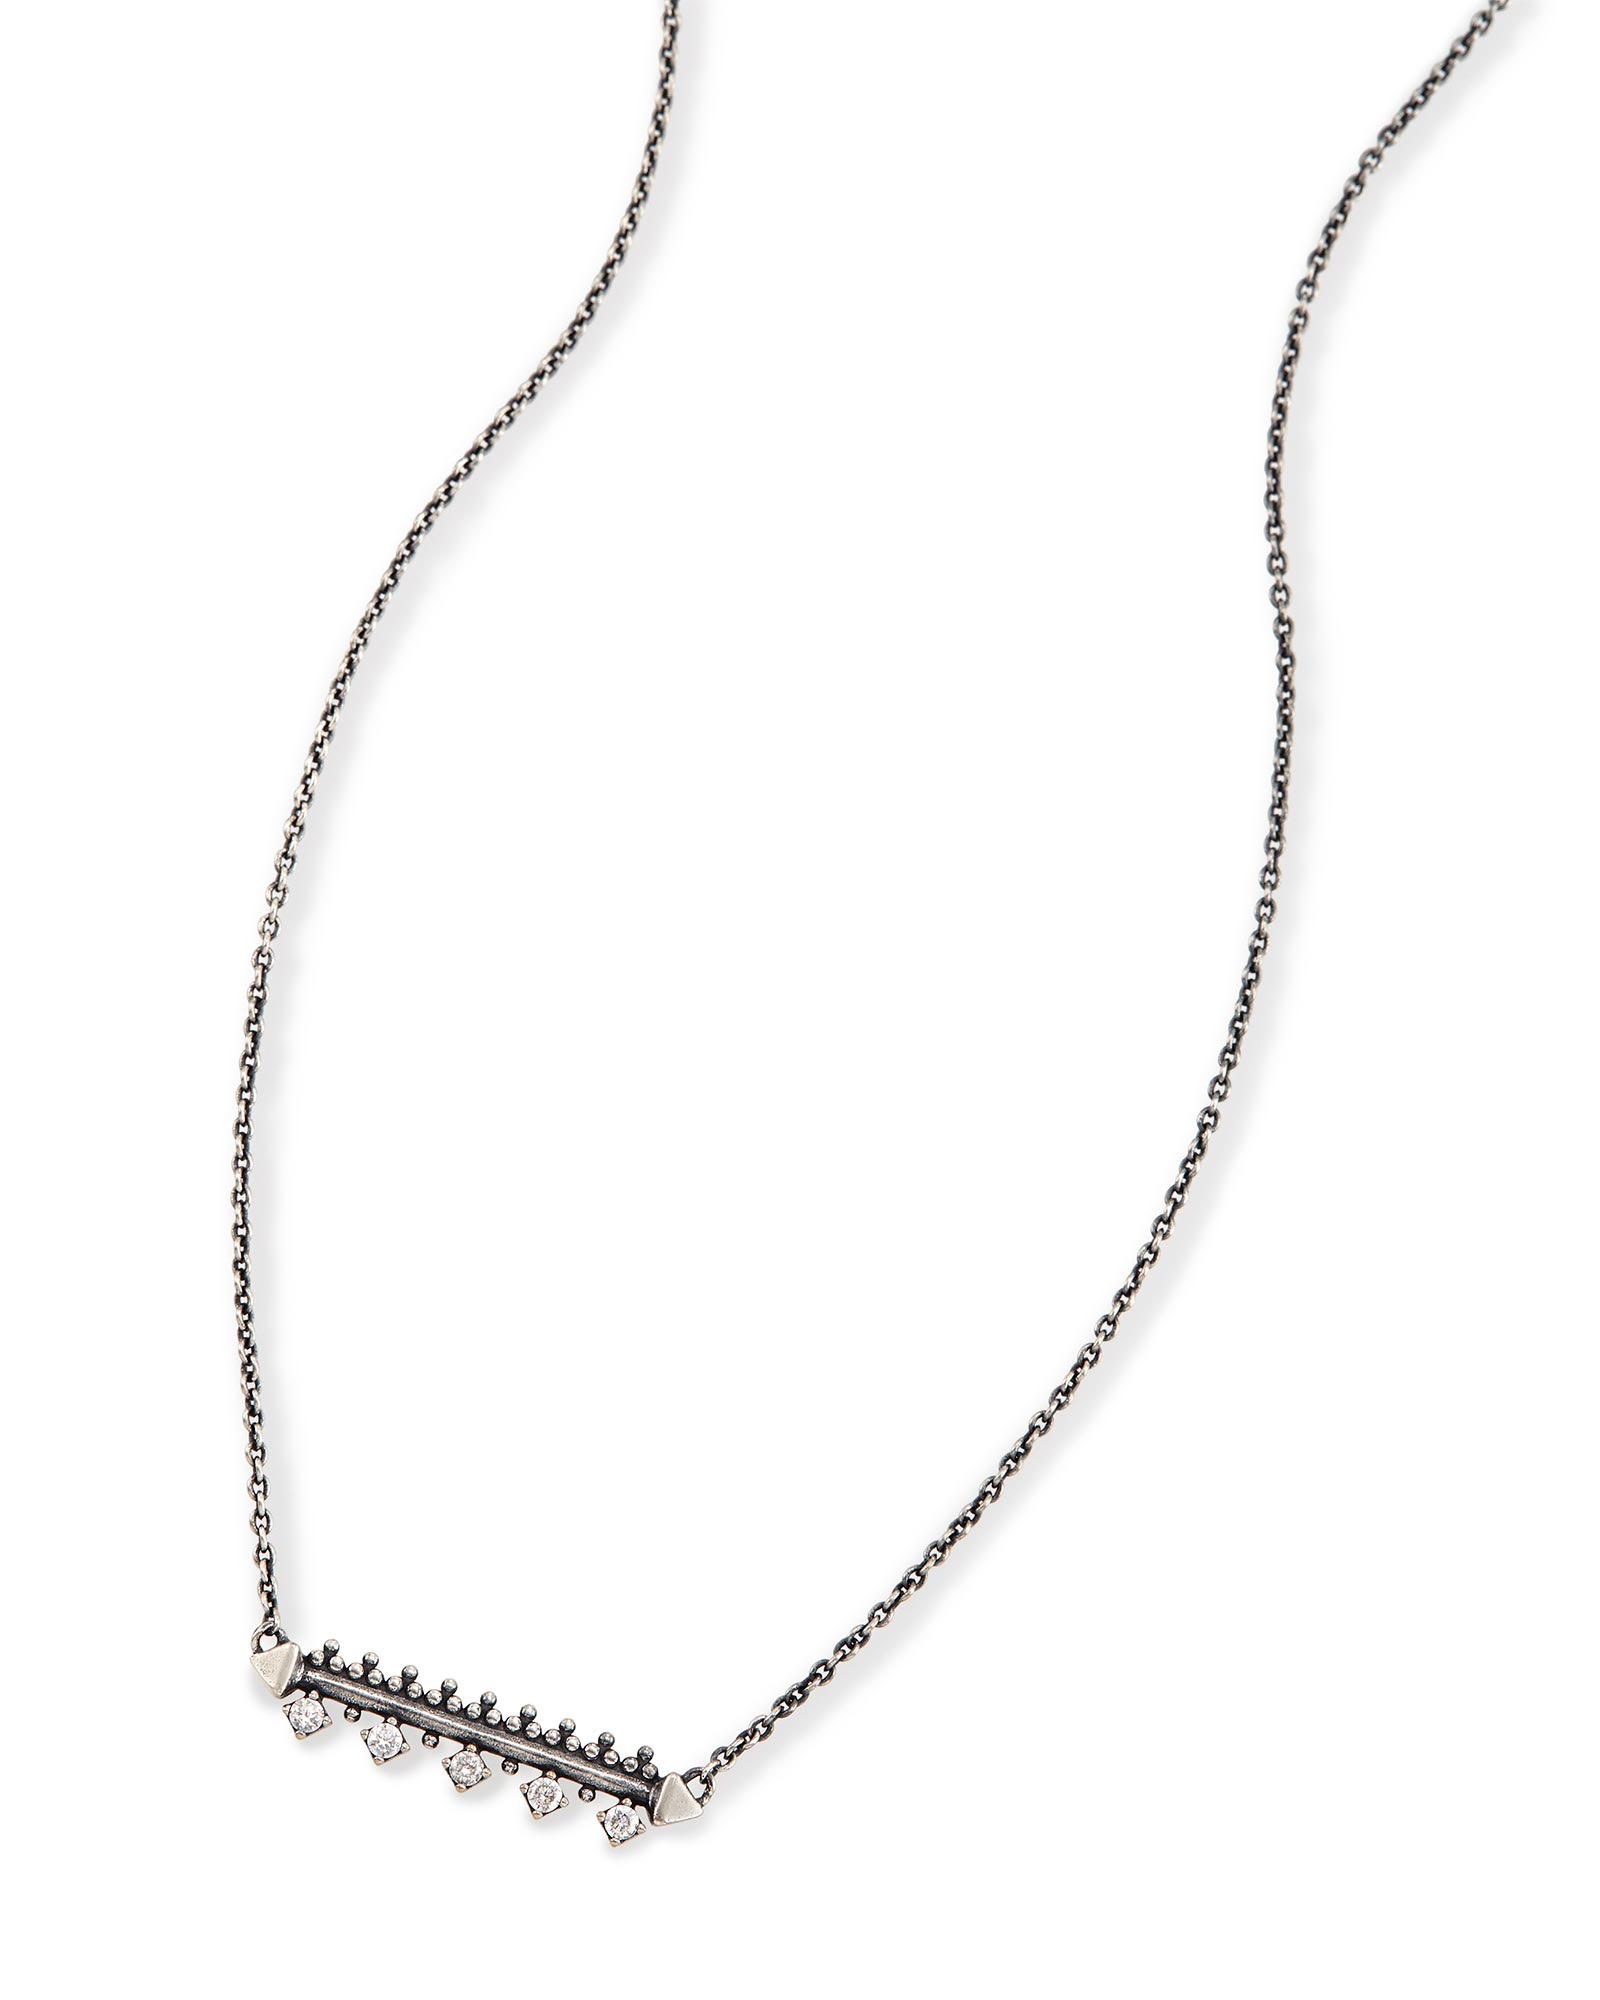 Anissa Bar Pendant Necklace in Antique Silver